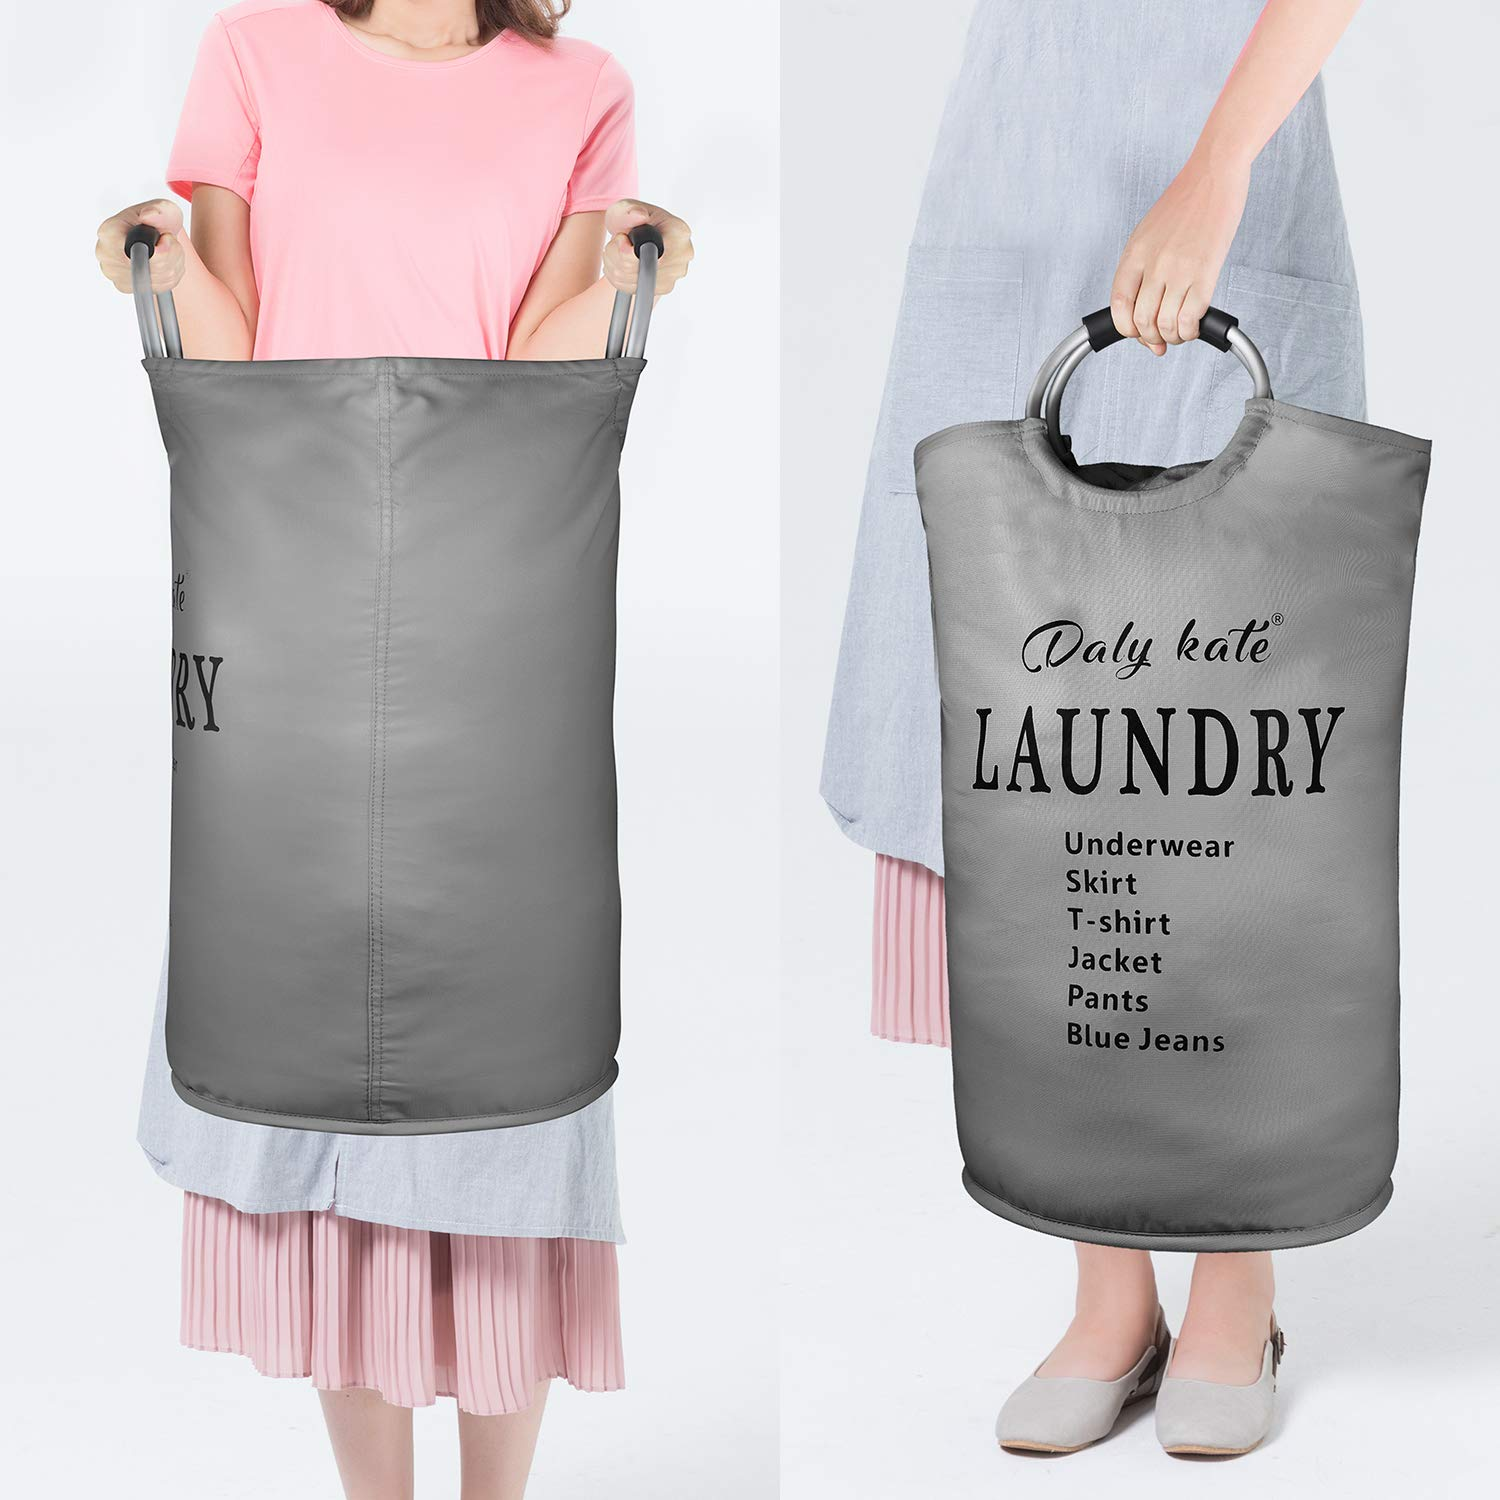 Daly Kate Large Laundry Bag Collapsible Oxford Fabric Laundry Hamper Bag with Aluminium Handles Foldable Tote Clothes Basket for Laundry and Storage-Grey